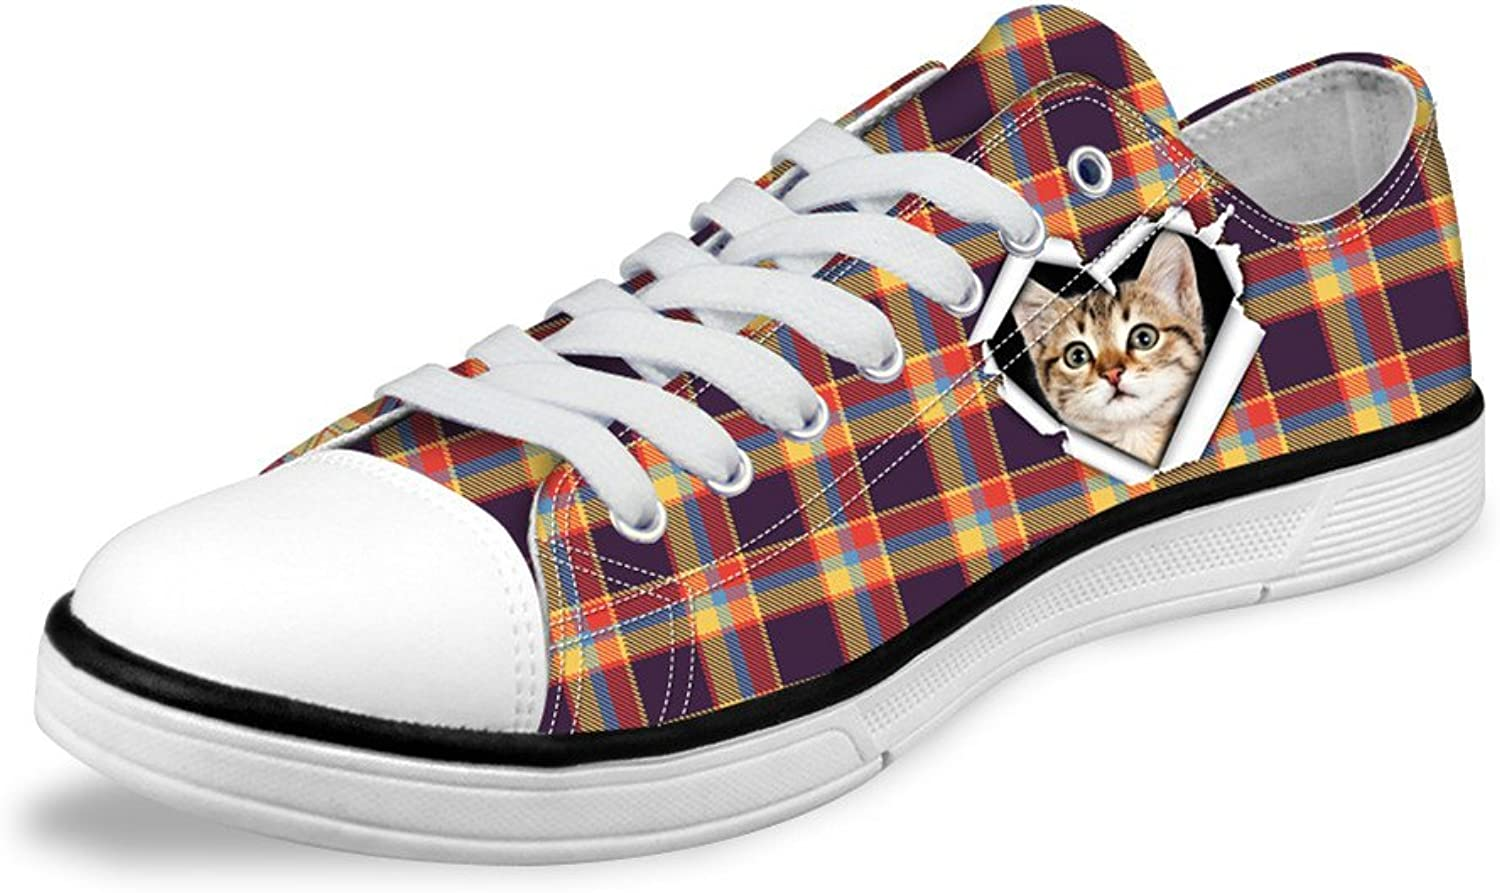 Micandle Cute Plaid Cat Print Design Simple Casual Low Top Canvas shoes